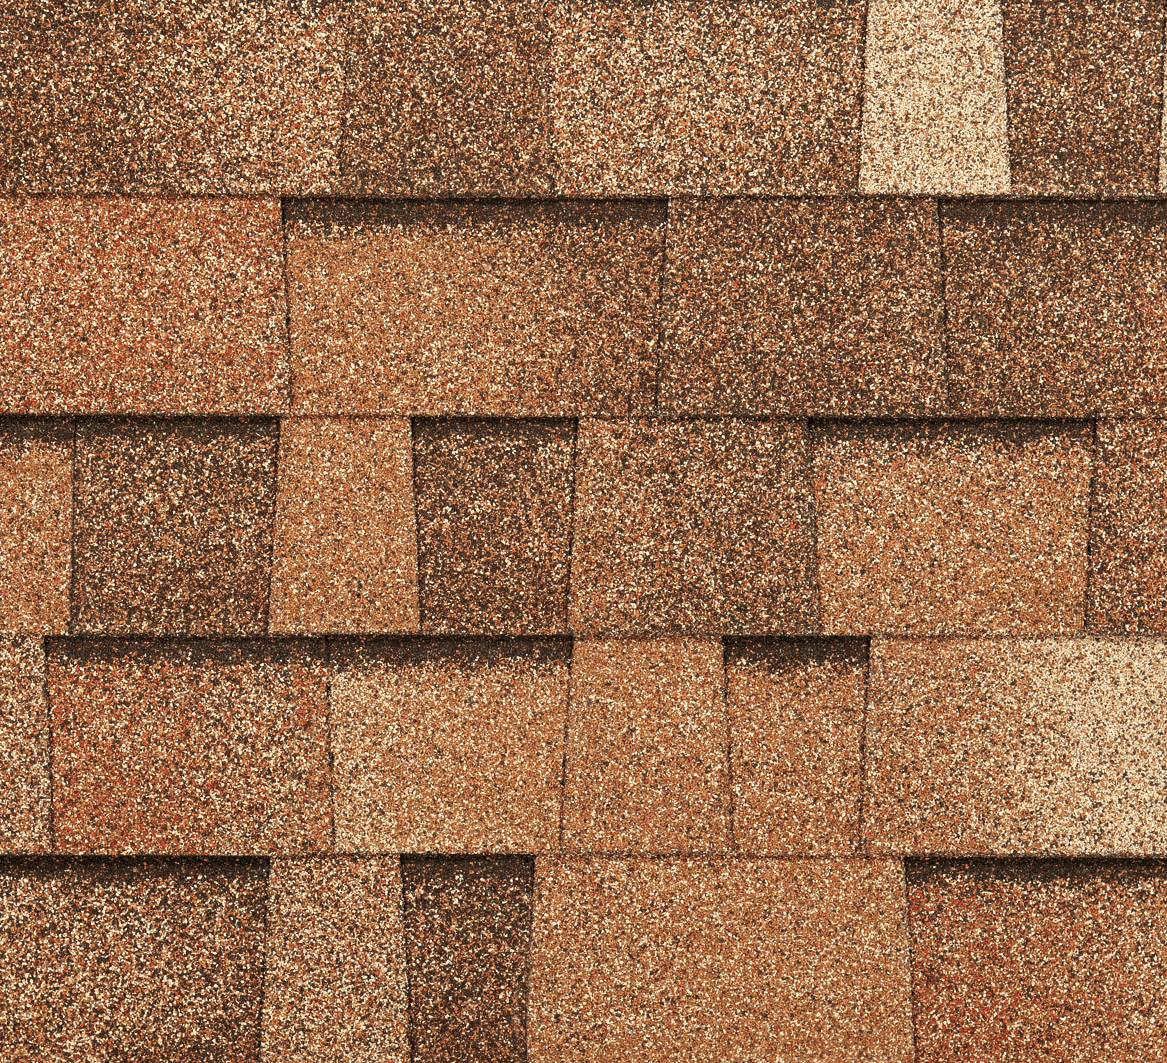 Best Rustic Tan Get A Roof That Compliments Your Home And Add 400 x 300